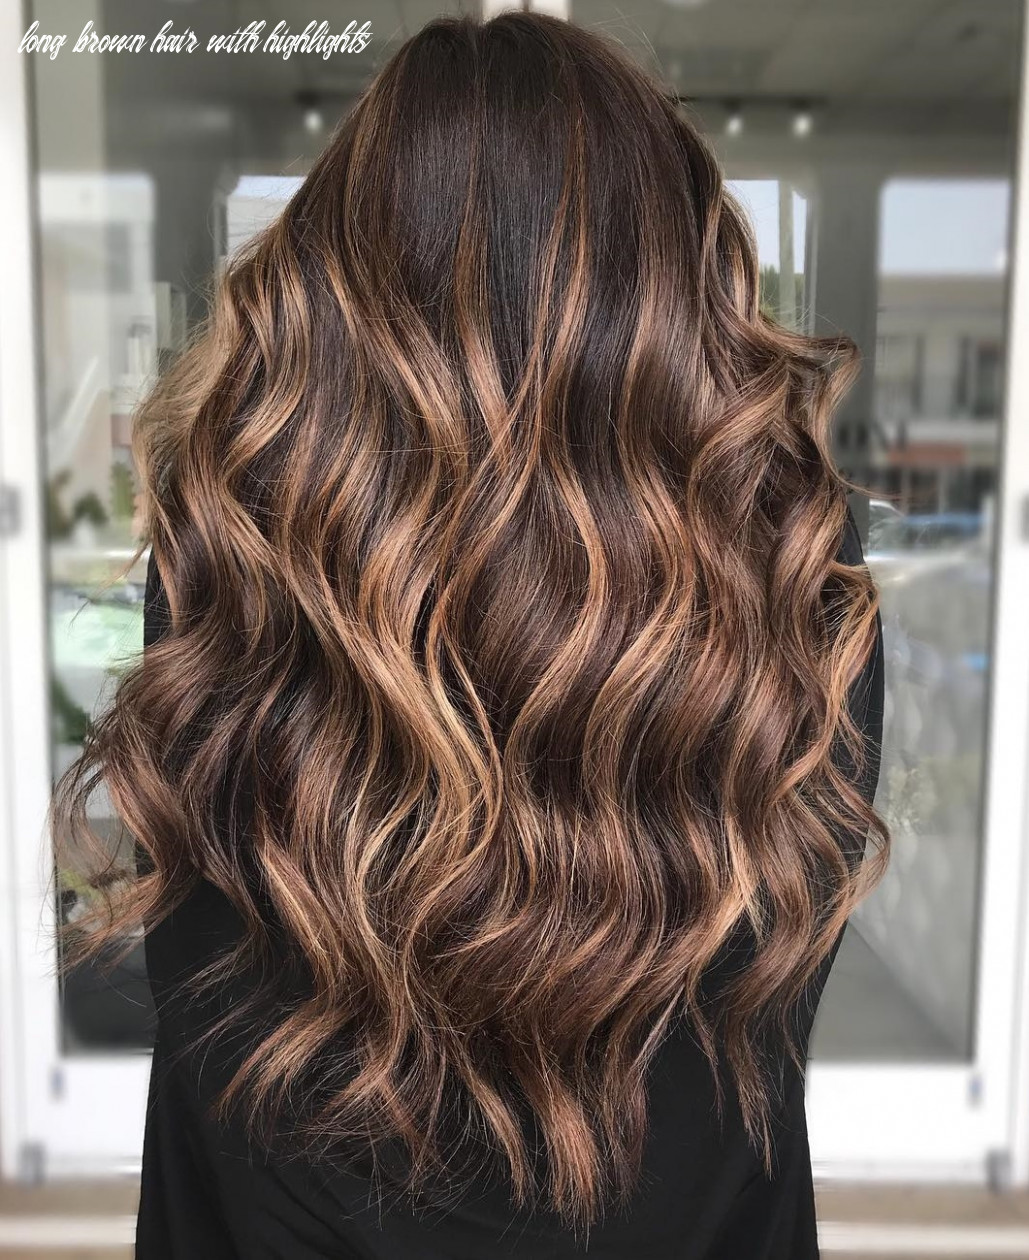 10 dark brown hair with highlights ideas for 10 hair adviser long brown hair with highlights